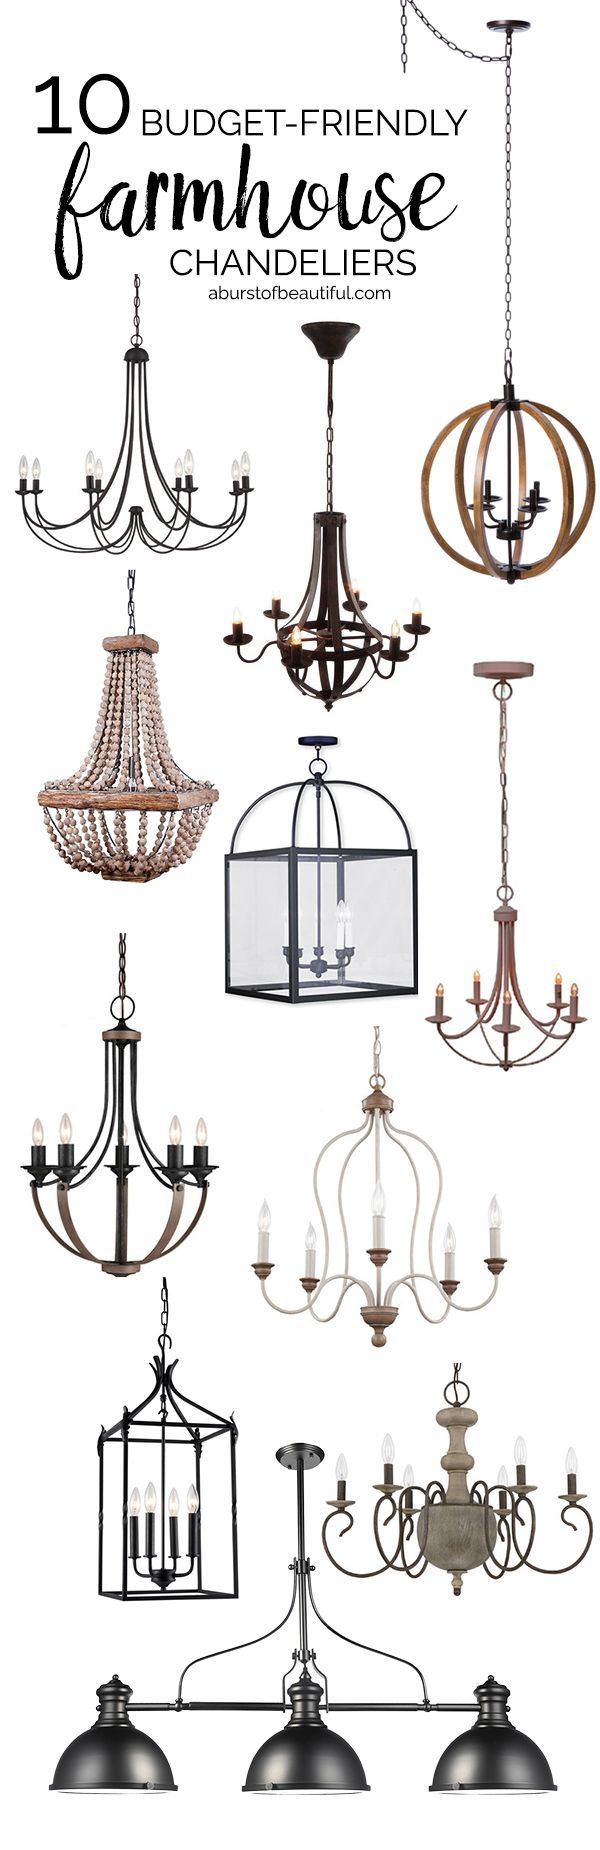 budget friendly farmhouse chandeliers farmhouse chandelier